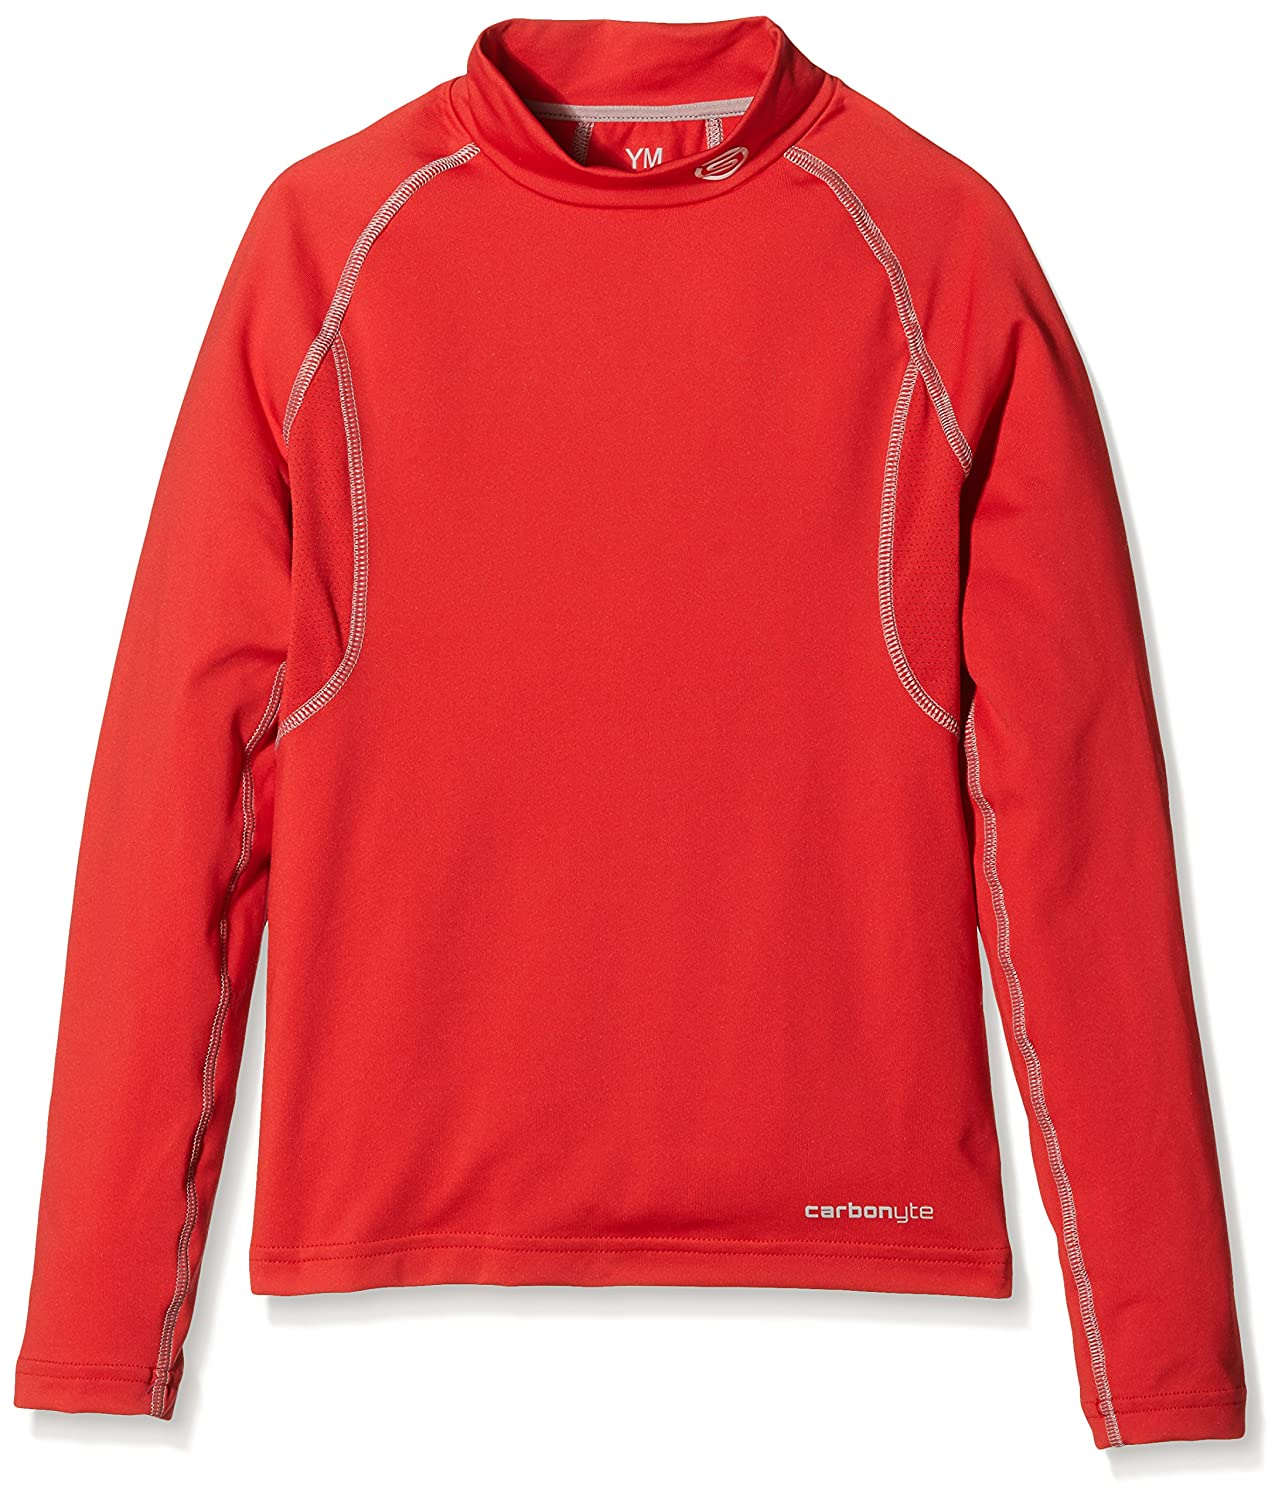 SKINS, Maglia Intima Termica a Maniche Lunghe Bambino Carbonyte, Rosso (Rot), S F03014066Y